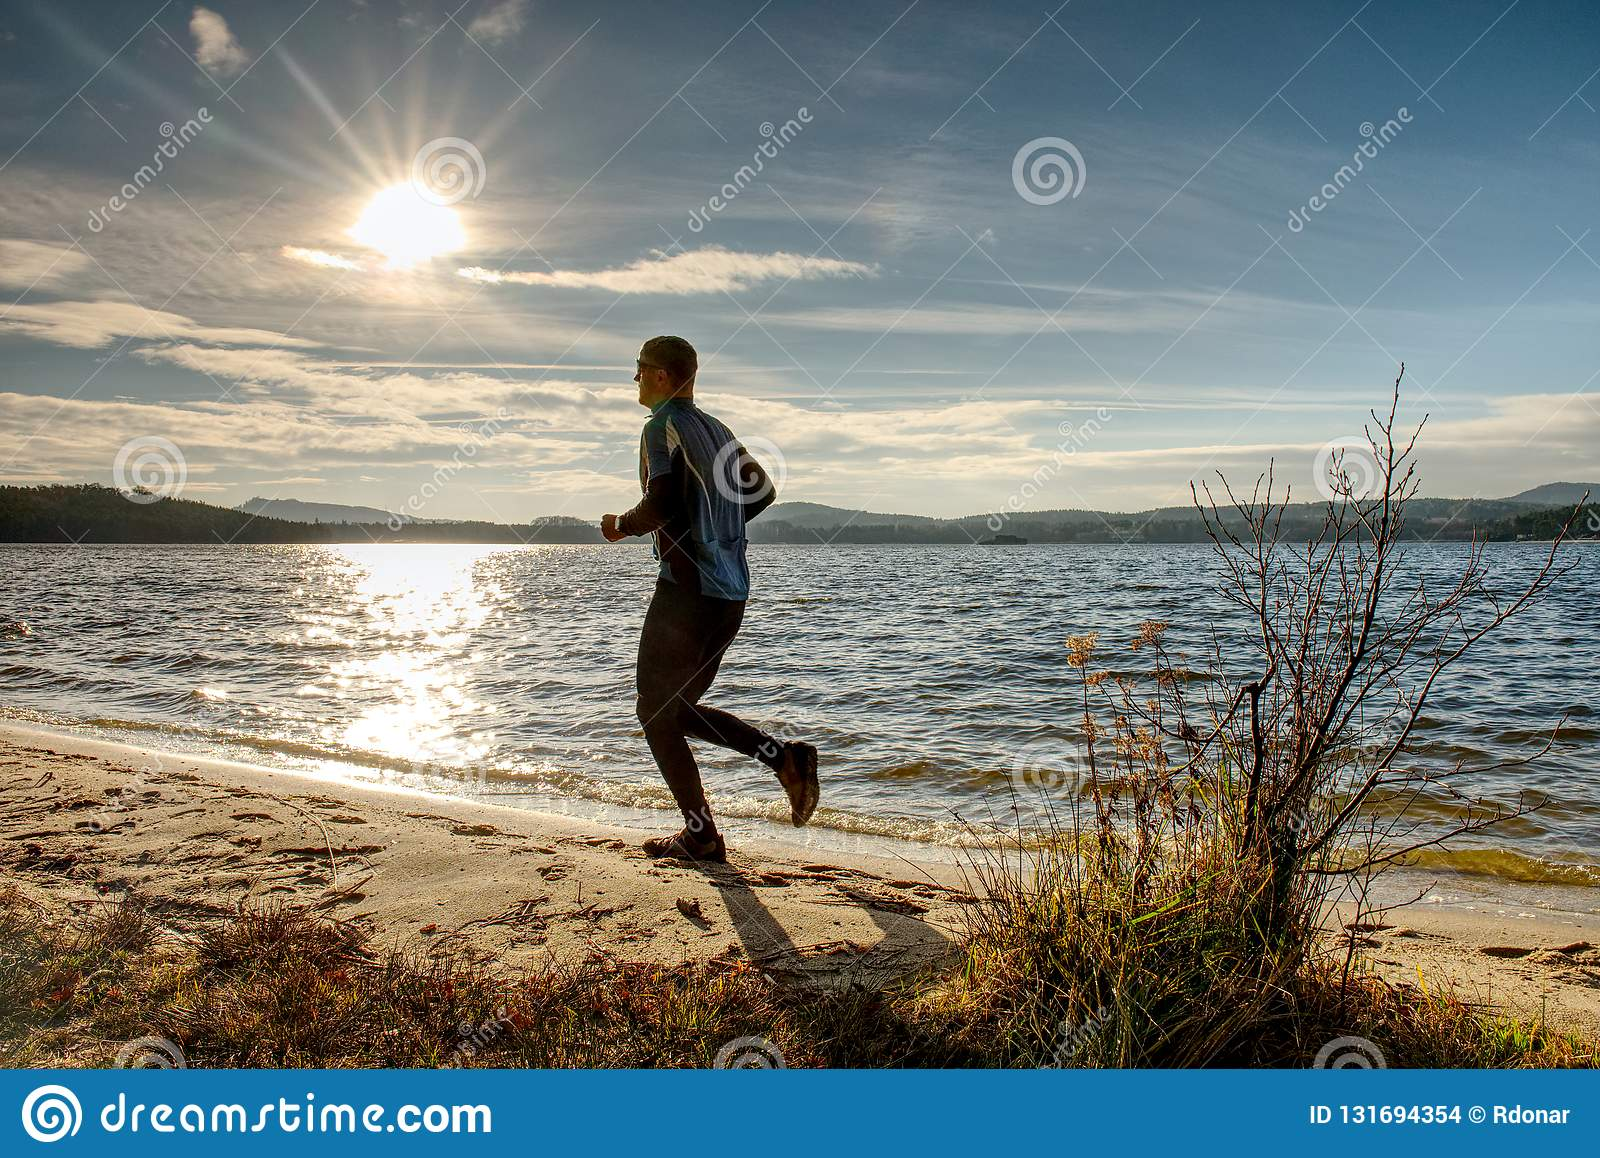 Active Man running at lake. Travel adventure healthy lifestyle concept vacations, athletic person